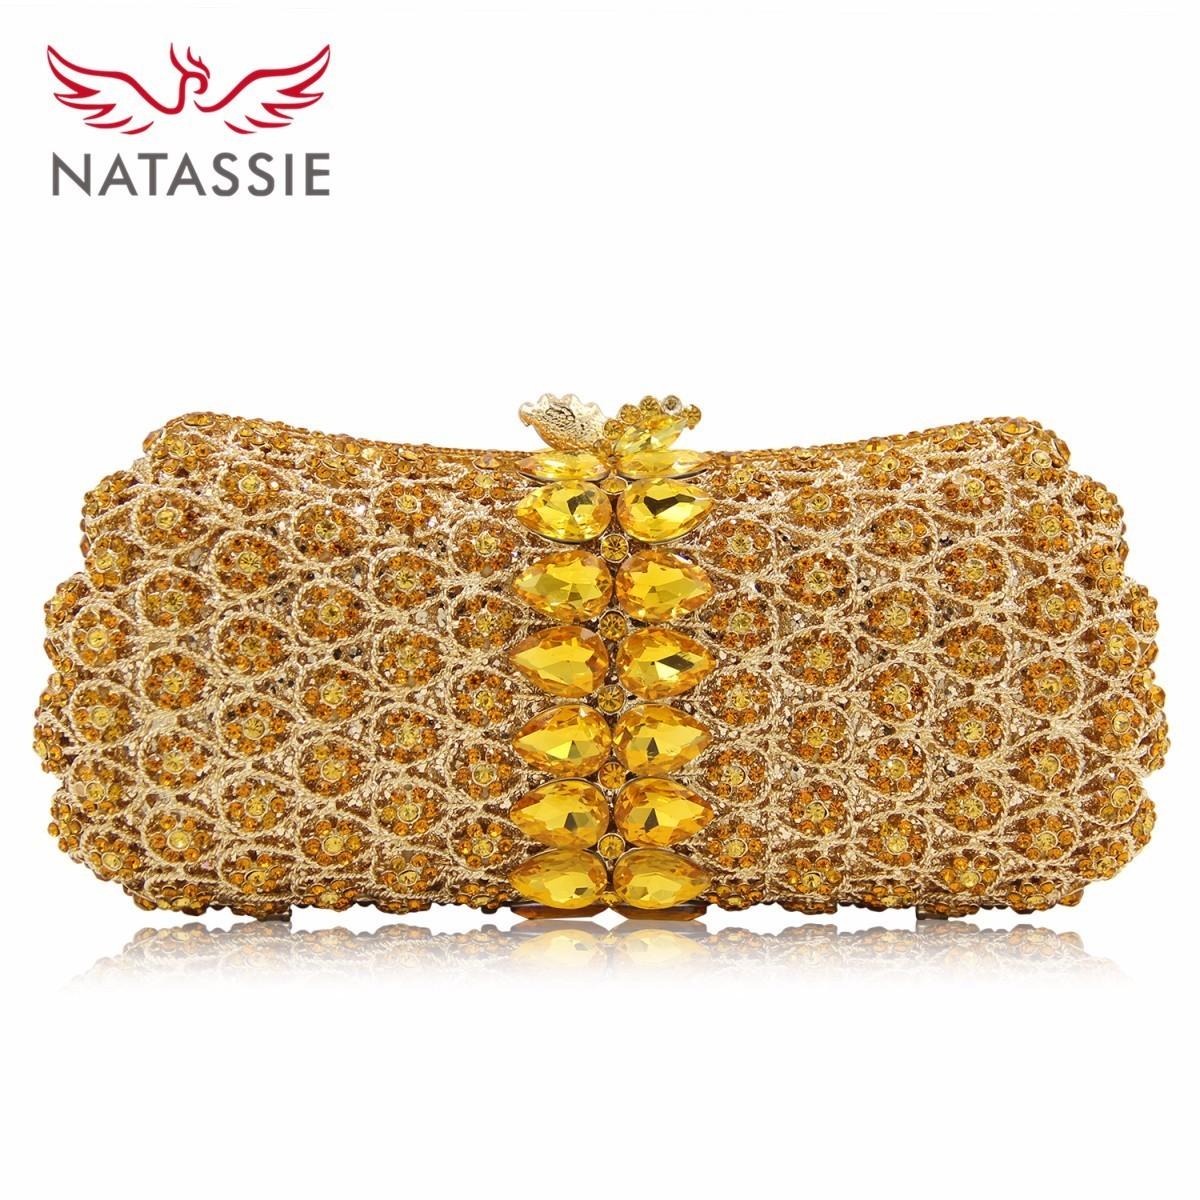 Natassie New Design Crystal Party Bag Women Wedding Purse 4 Colors Different Diamonds Ladies Evening Bag Good Quality natassie new design luxury crystal clutch women evening bag gold red ladies wedding banquet party purses good quality